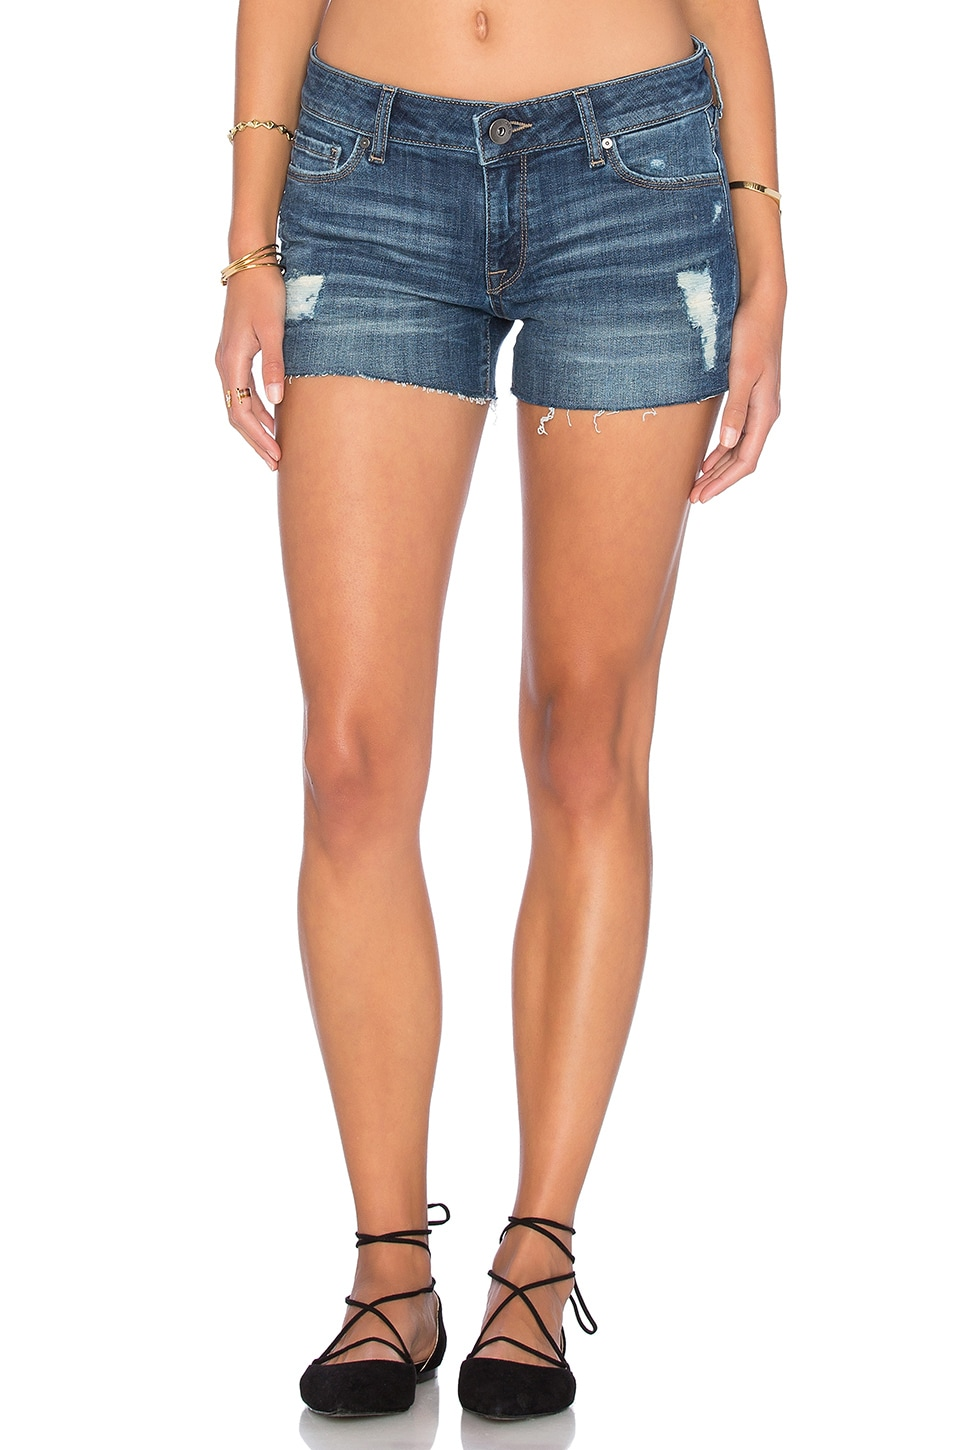 Renee Cut Off Shorts by DL1961